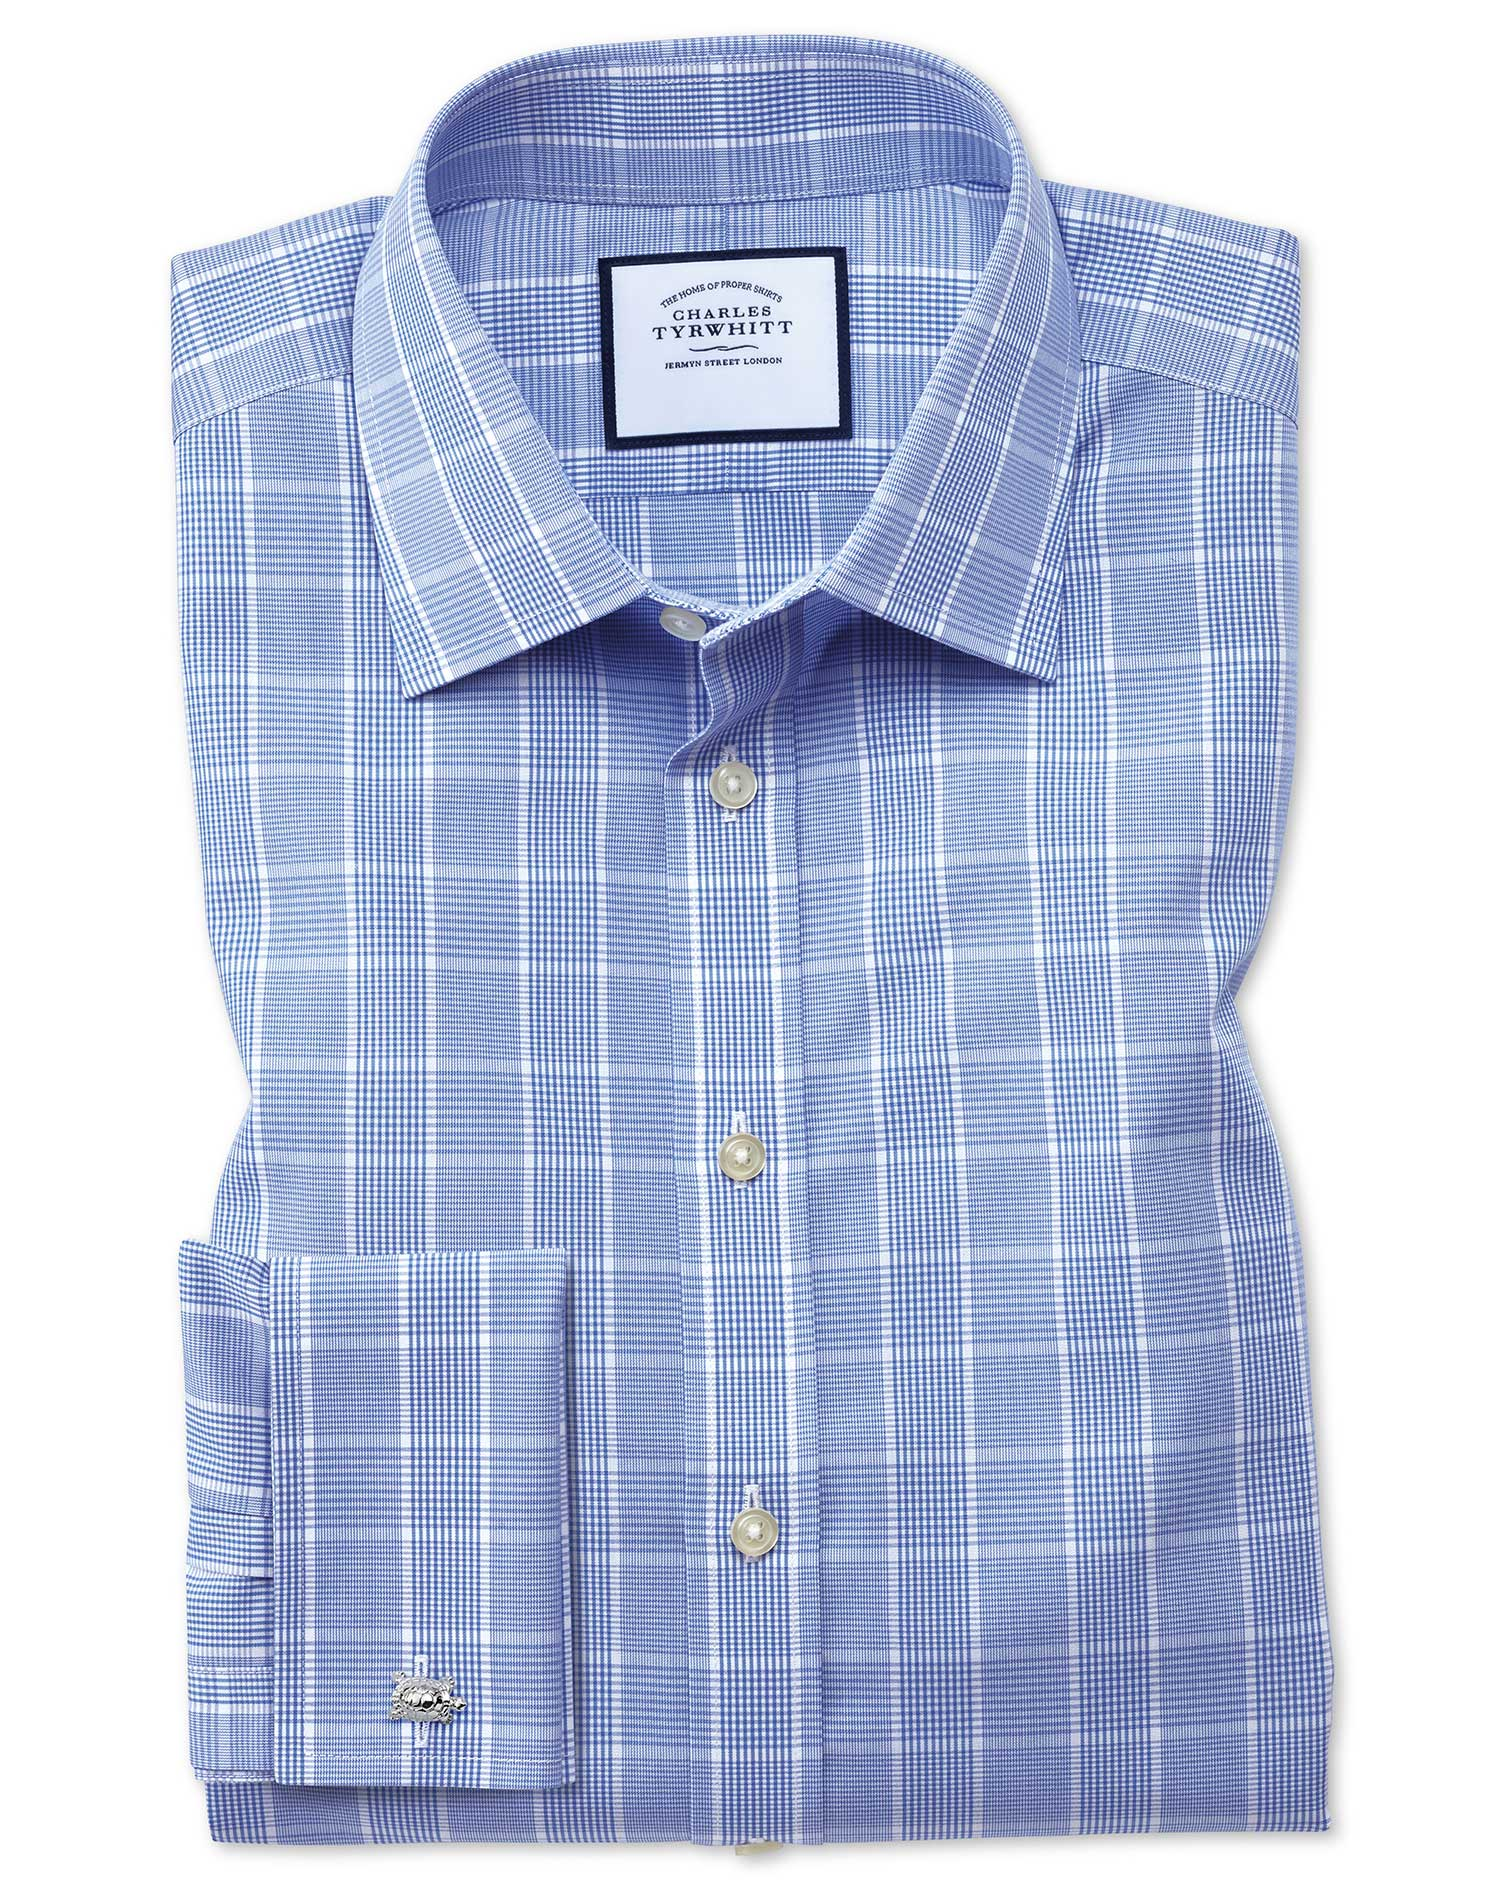 Slim Fit Non-Iron Prince Of Wales Mid Blue Cotton Formal Shirt Single Cuff Size 17/36 by Charles Tyr